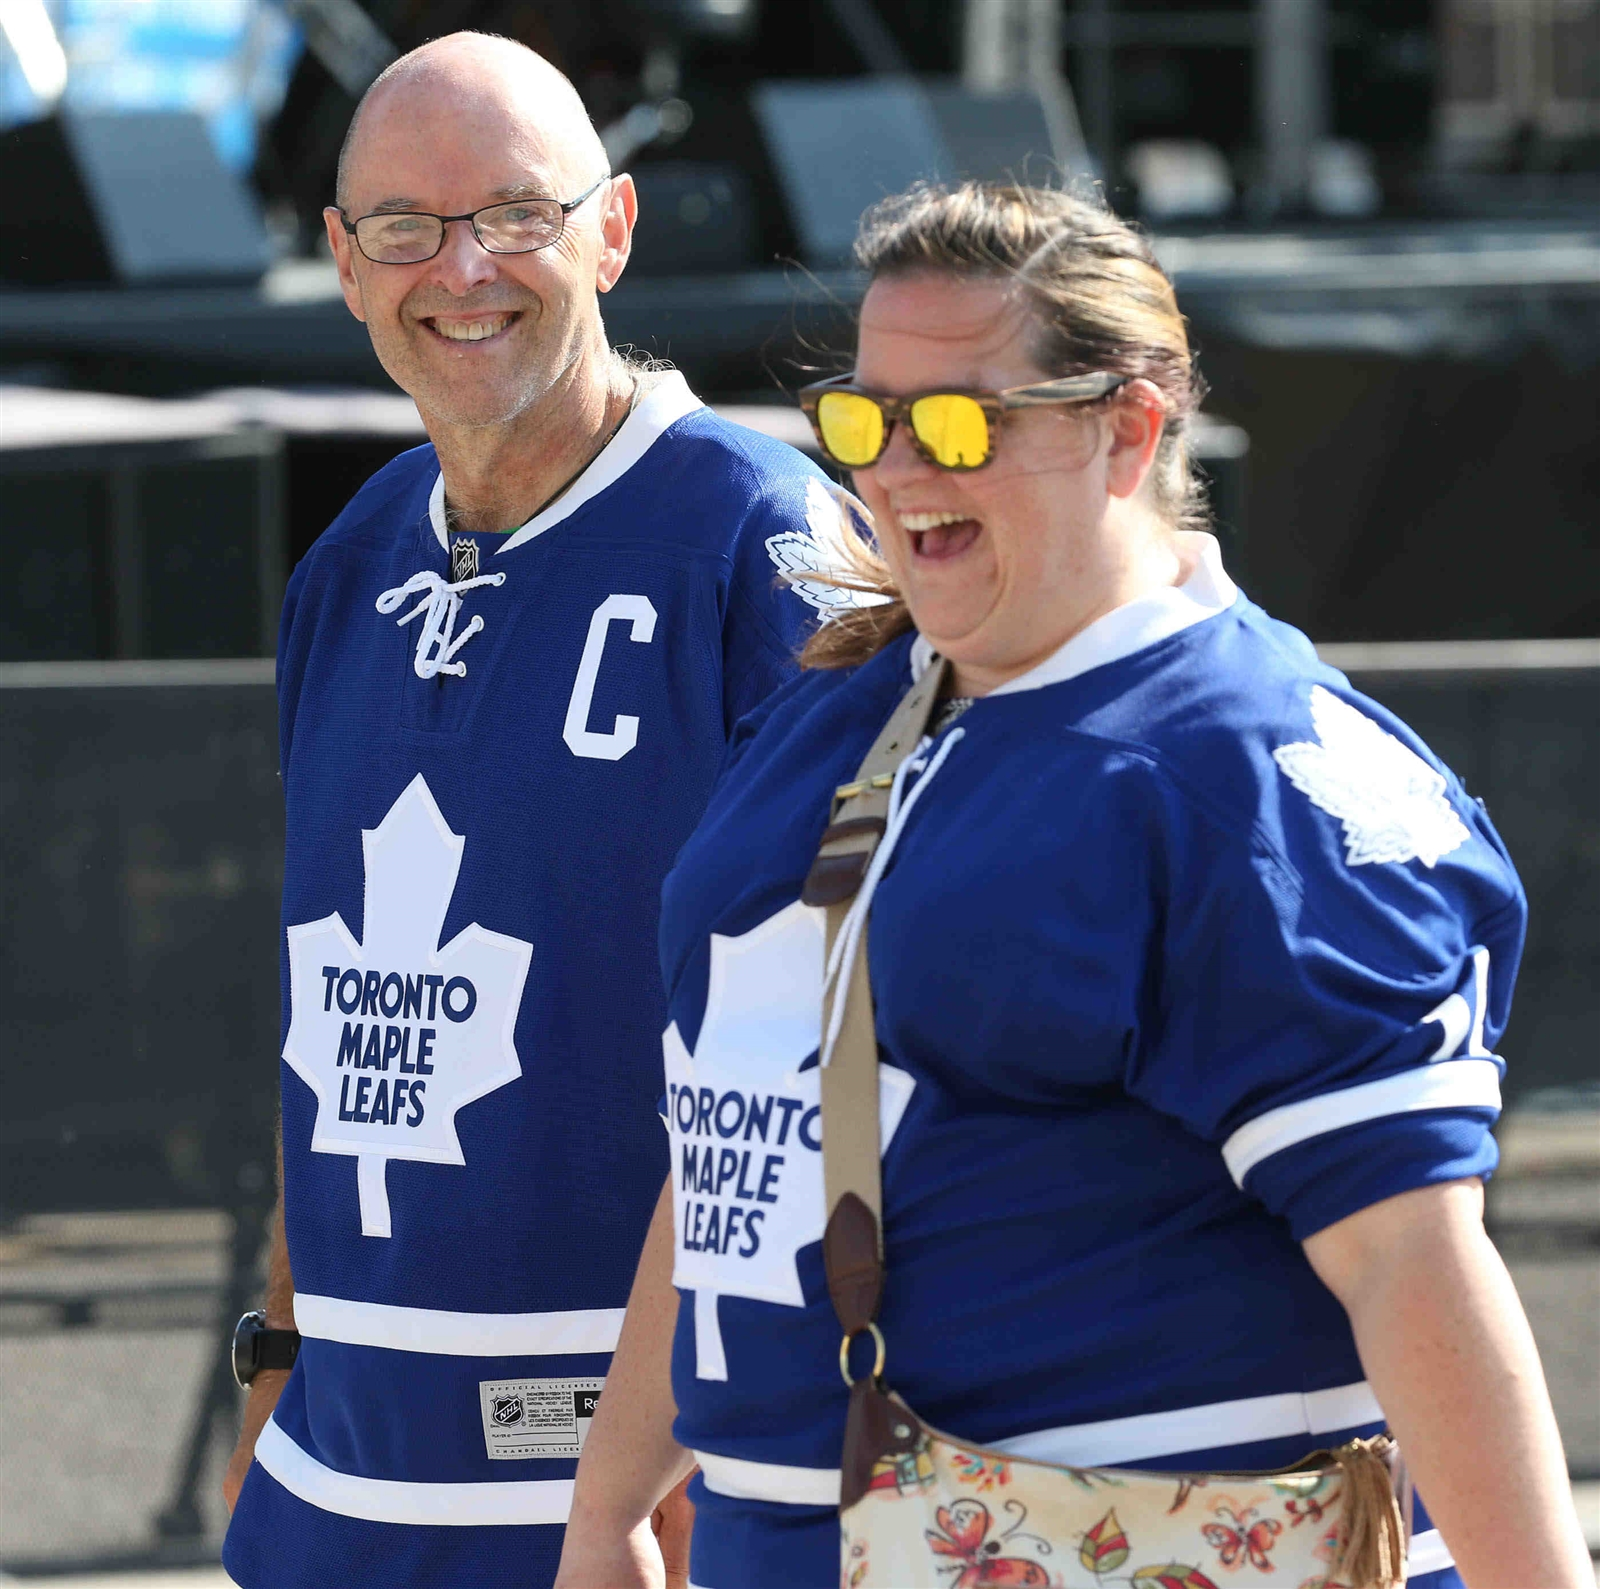 Toronto Maple Leafs fans were a part of the Fan Fest as well as the NHL Draft itself. (James P. McCoy/Buffalo News)